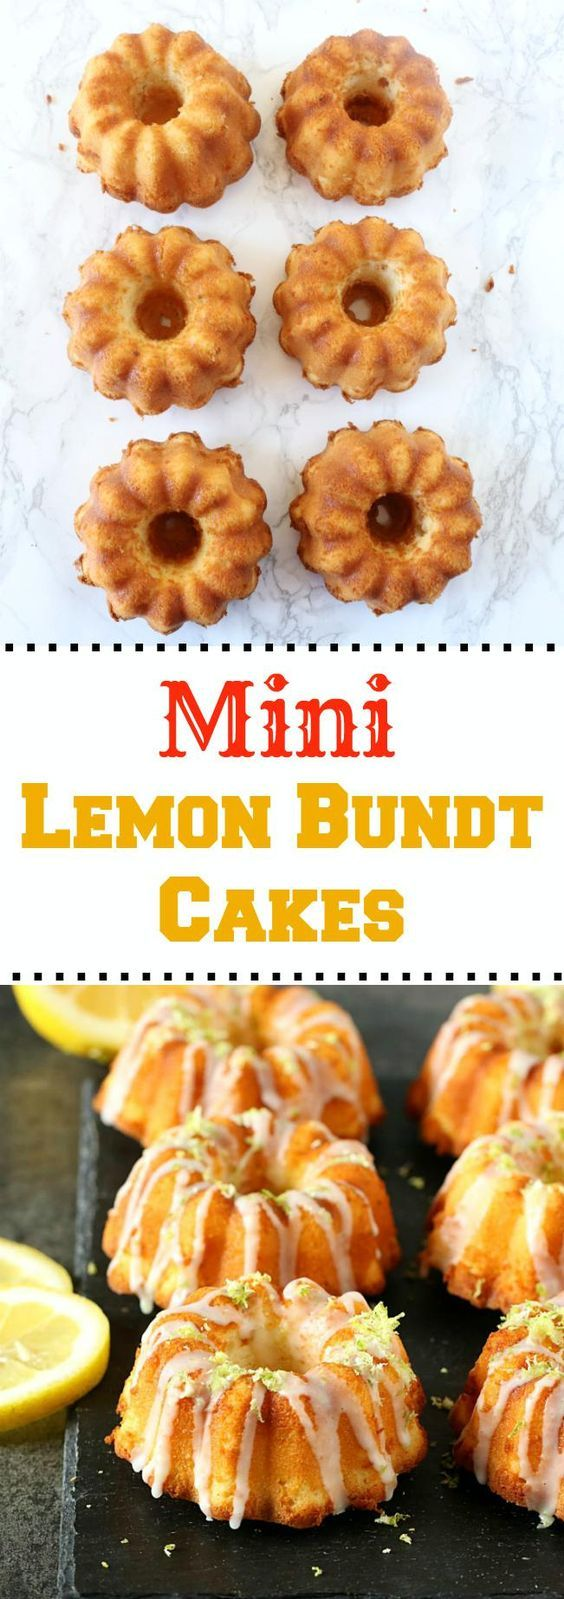 You will LOVE these delicious Mini Lemon Bundt Cakes with lemon glaze! Full of flavor, incredibly moist, and a delightful recipe. Aperfect addition to your potluck or summer party! #minibundtcakes #bundtcakes #potluck #sweettooth #lemoncakes #delicious